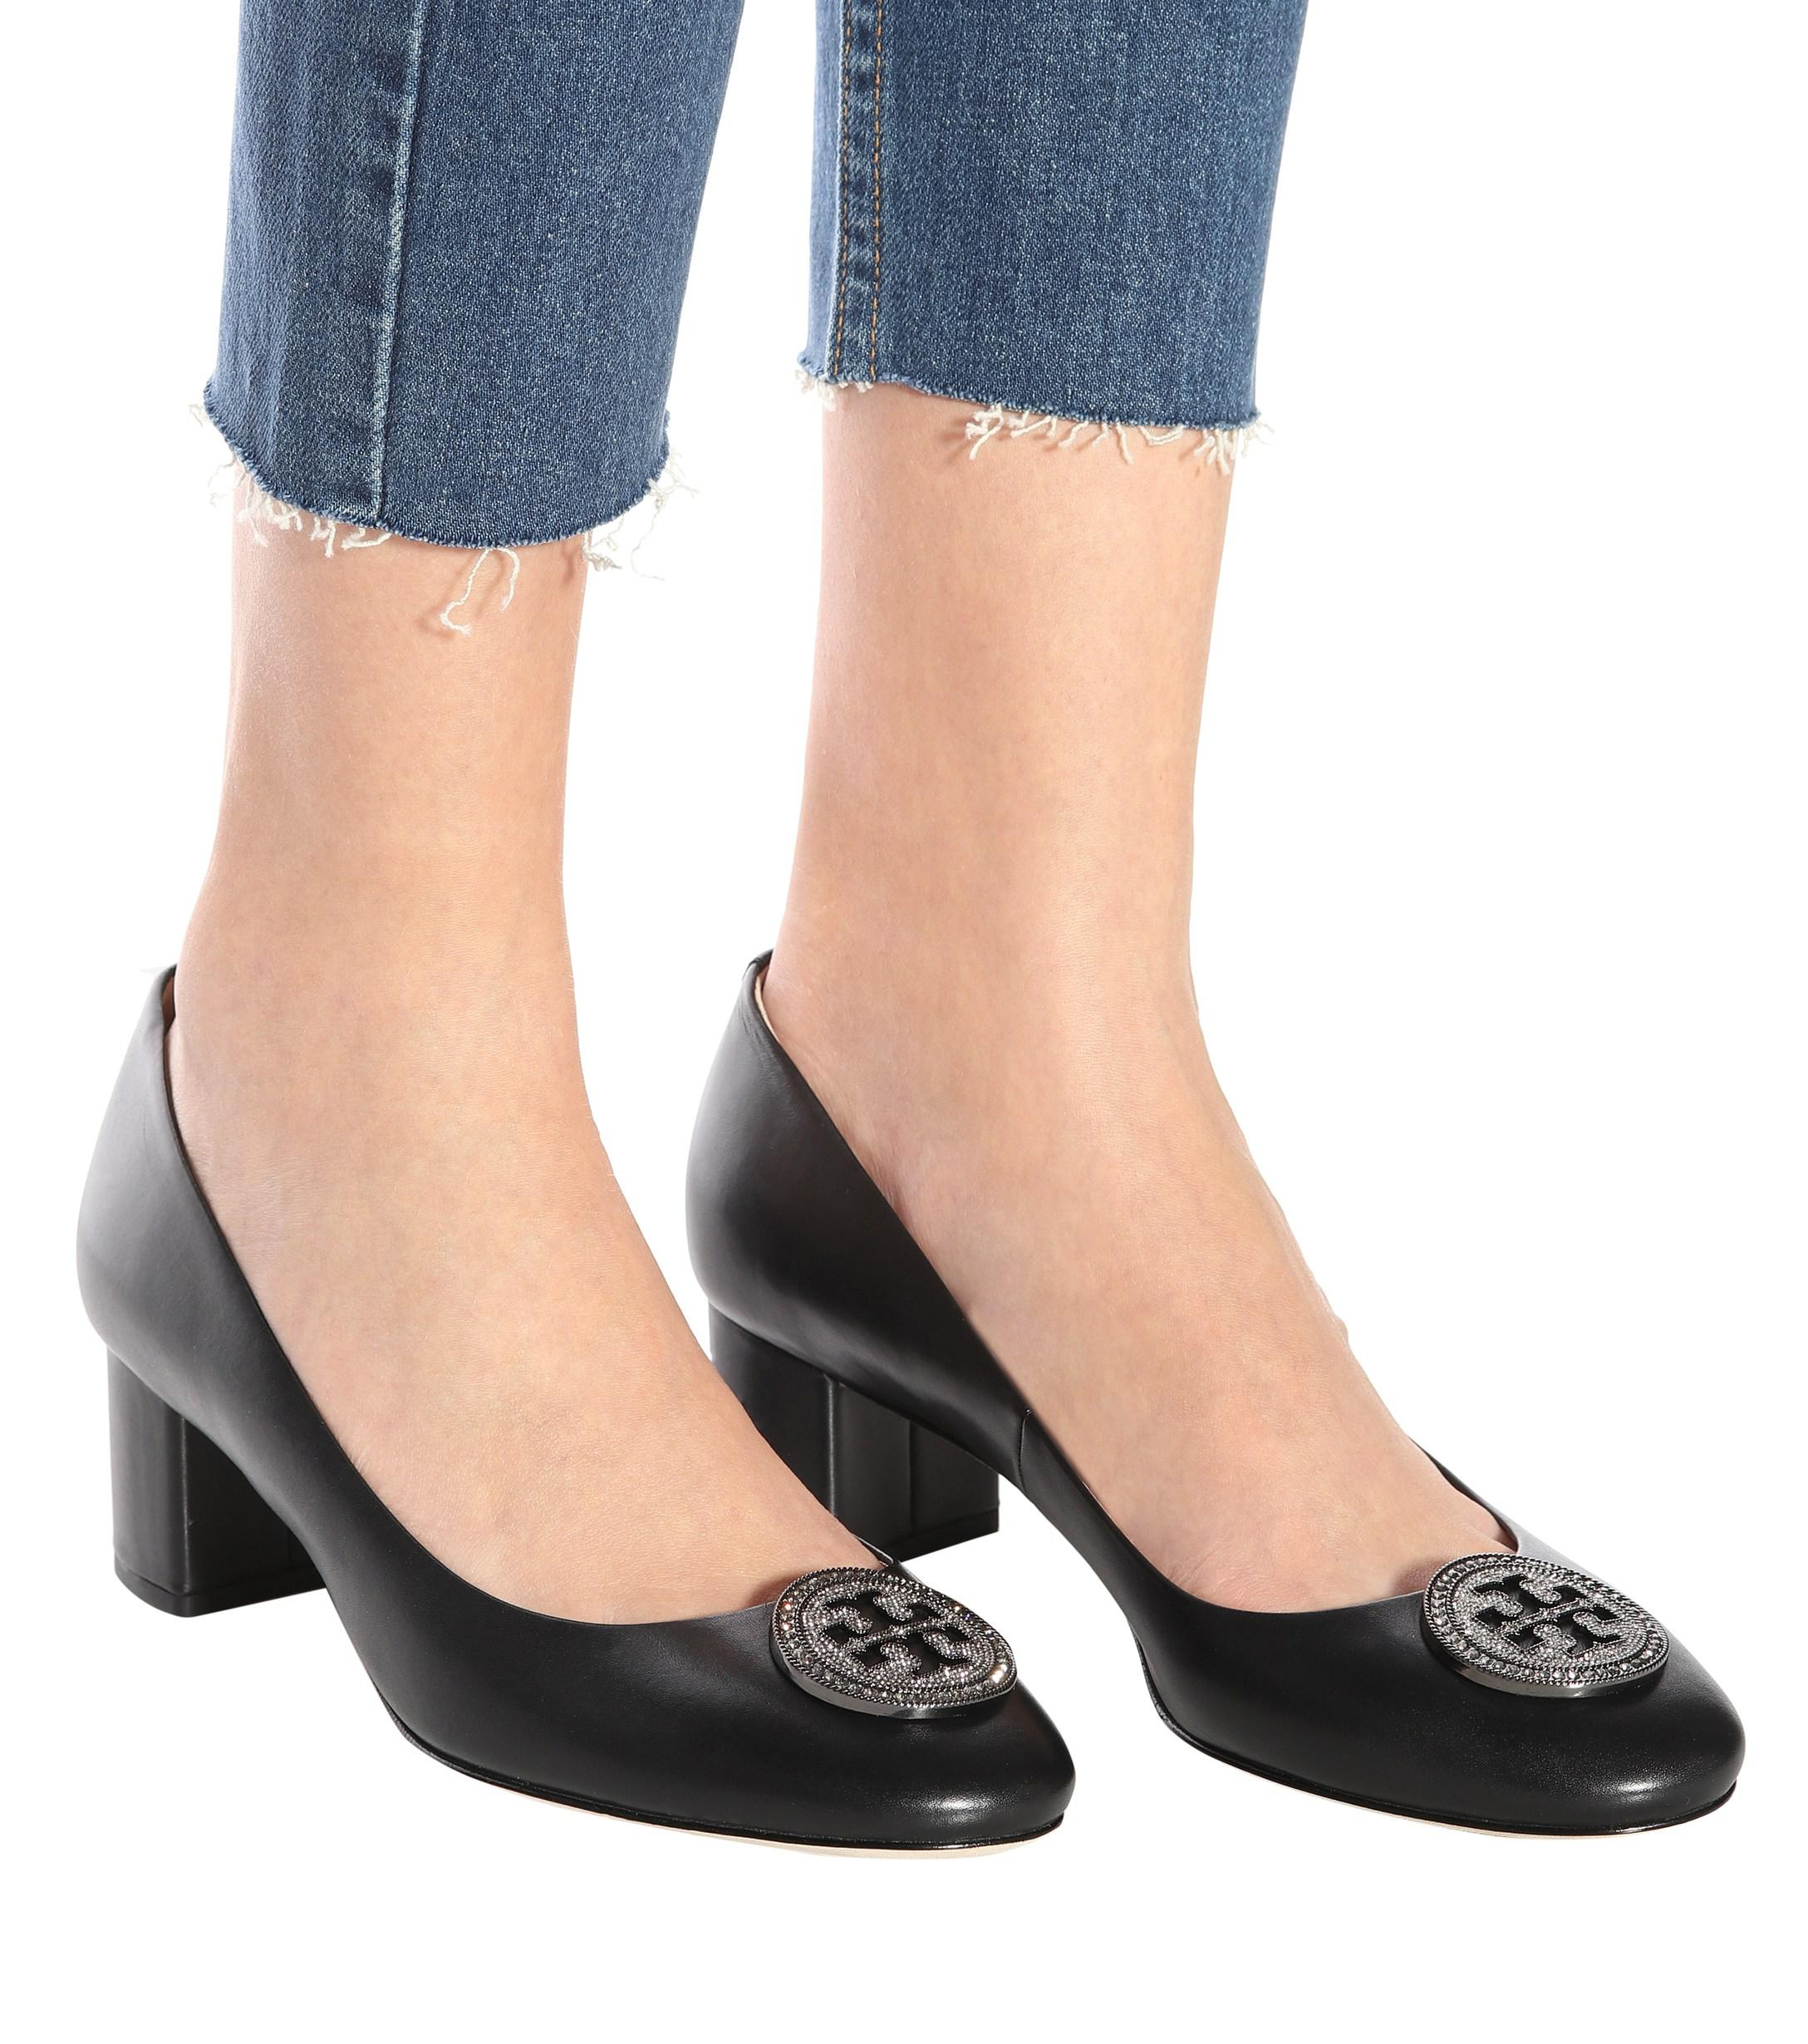 c2bc69812dc Tory Burch - Black Liana Leather Pumps - Lyst. View fullscreen